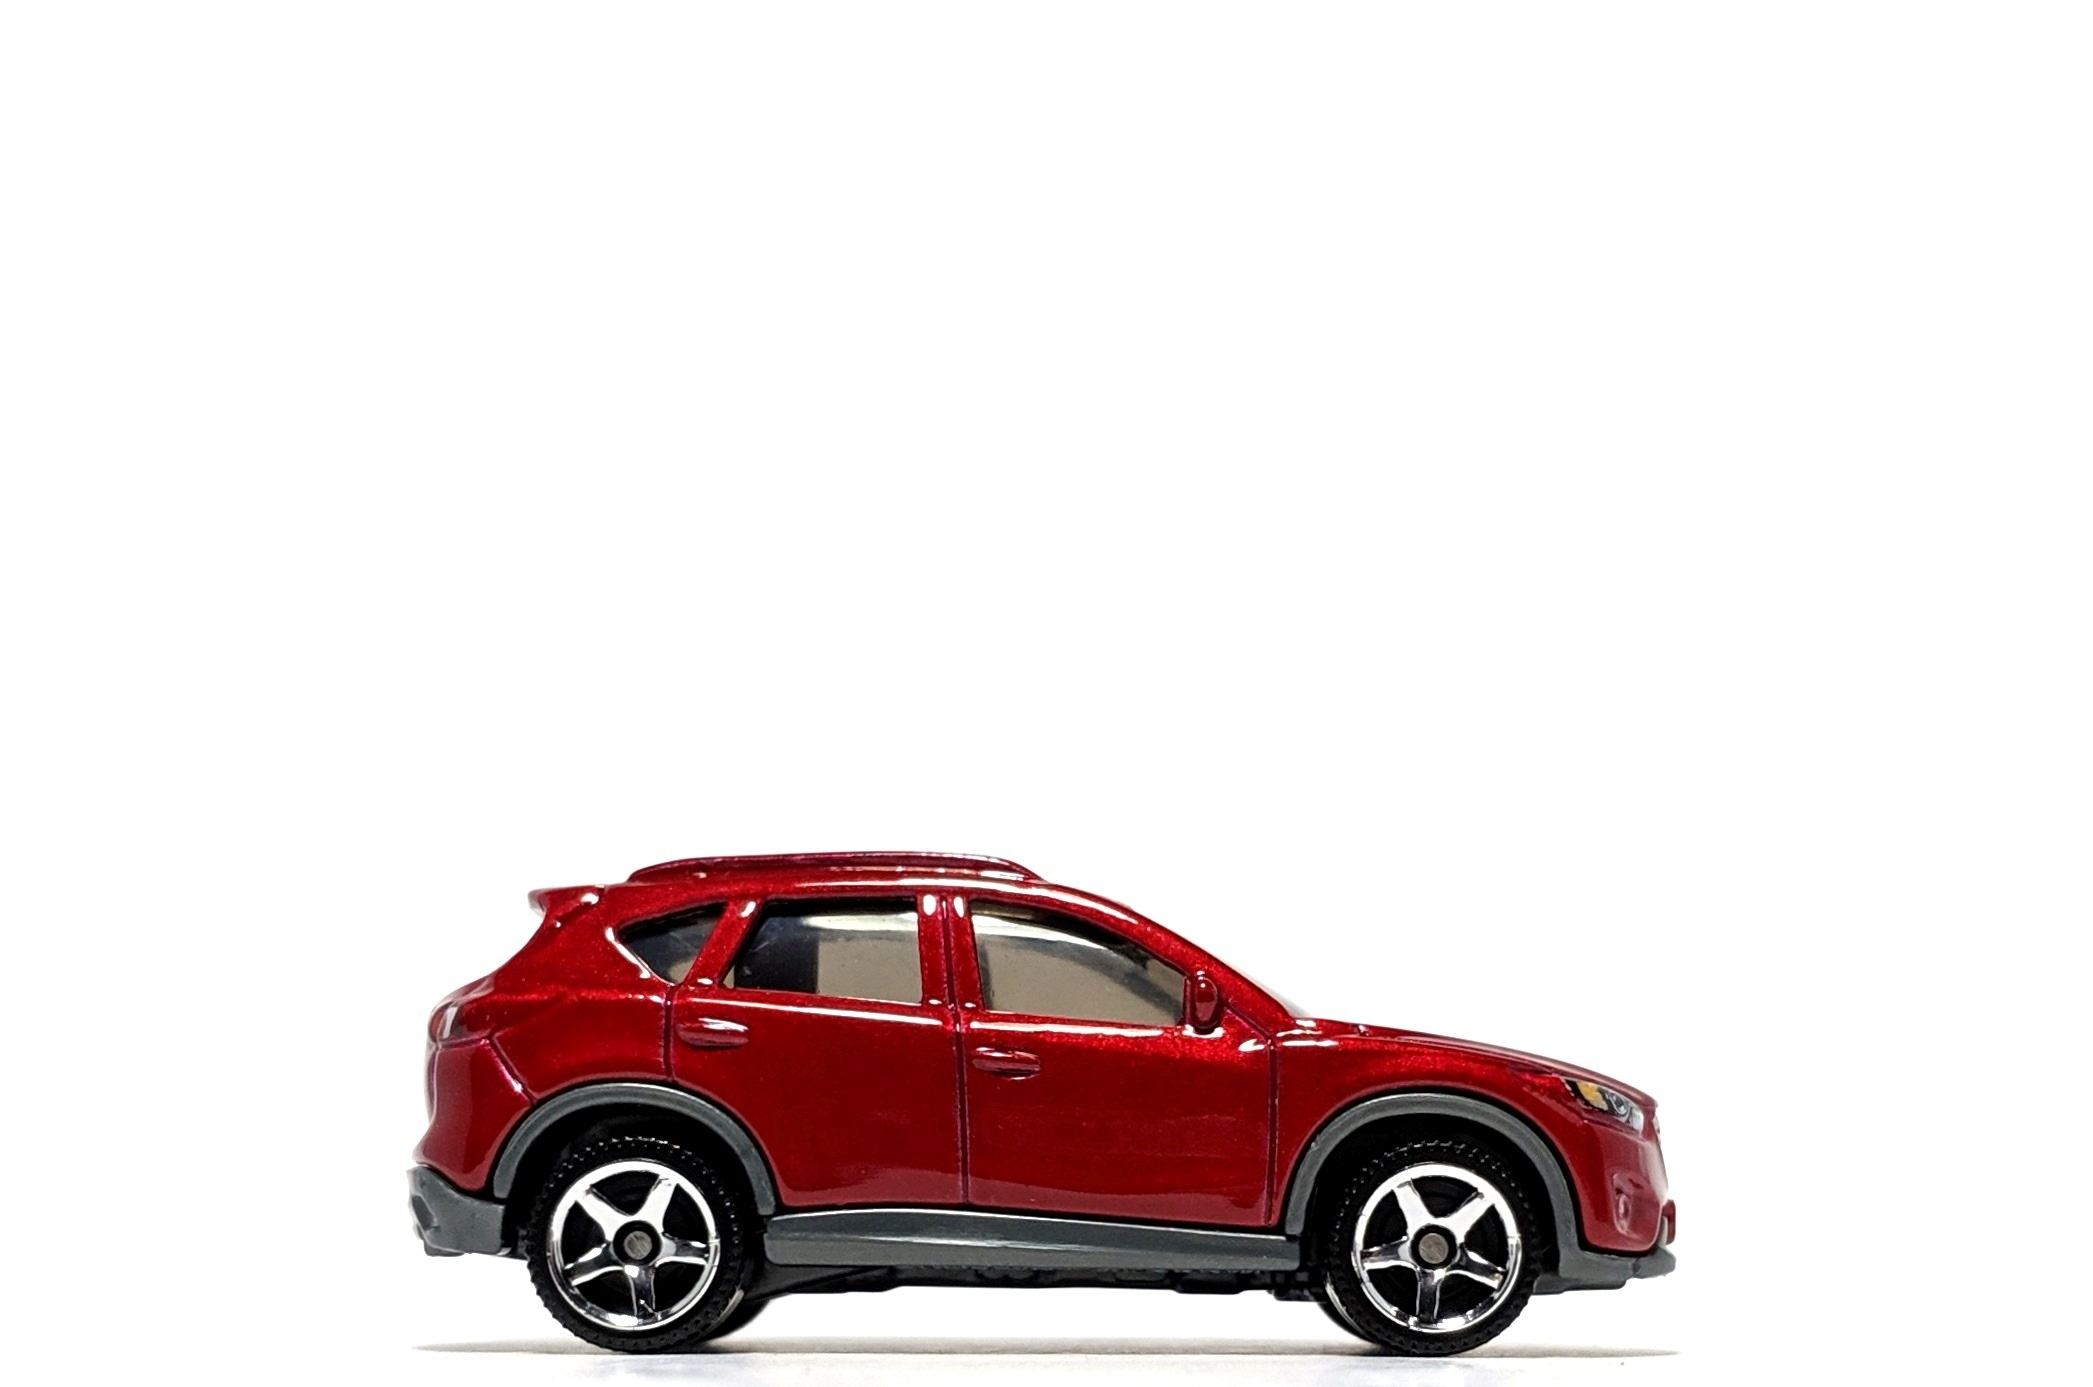 Mazda CX-5, by Matchbox